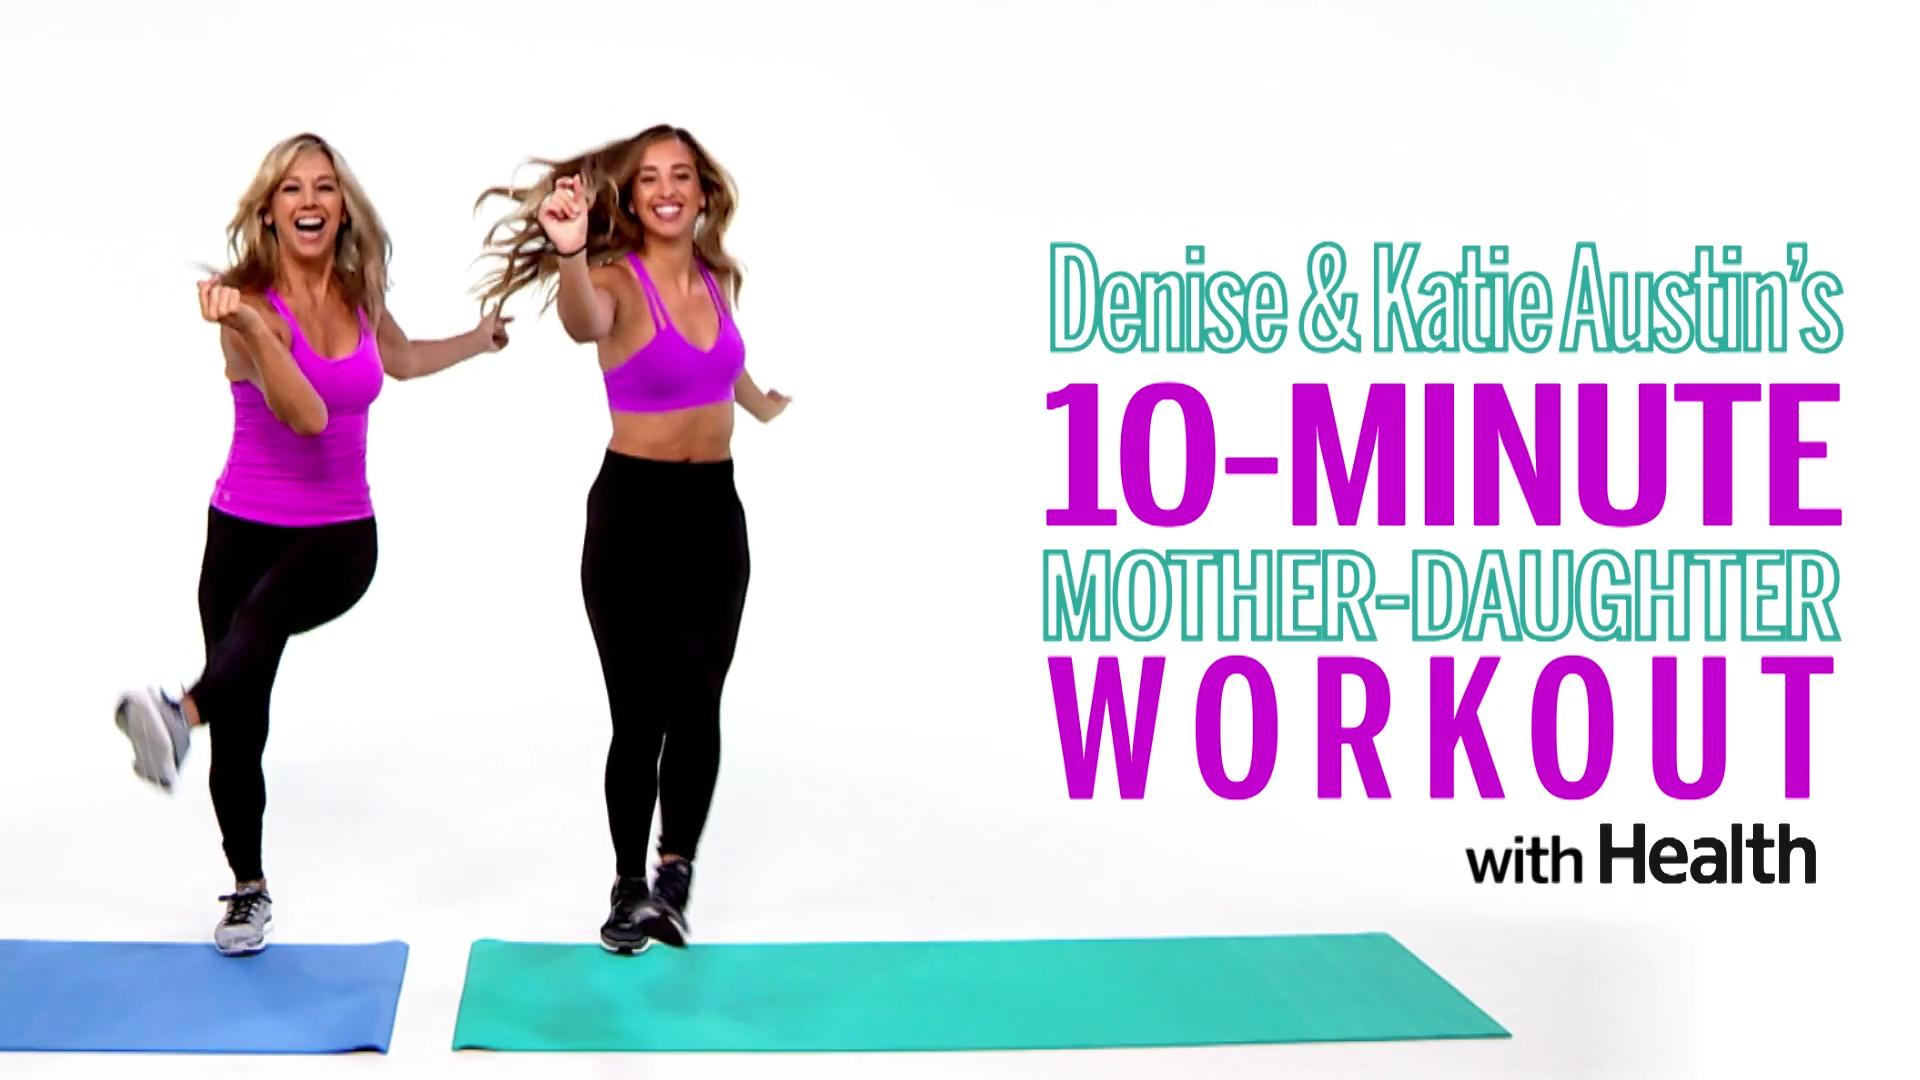 cb342d301f7 The Best 10-Minute Workouts You Can Do at Home - Health